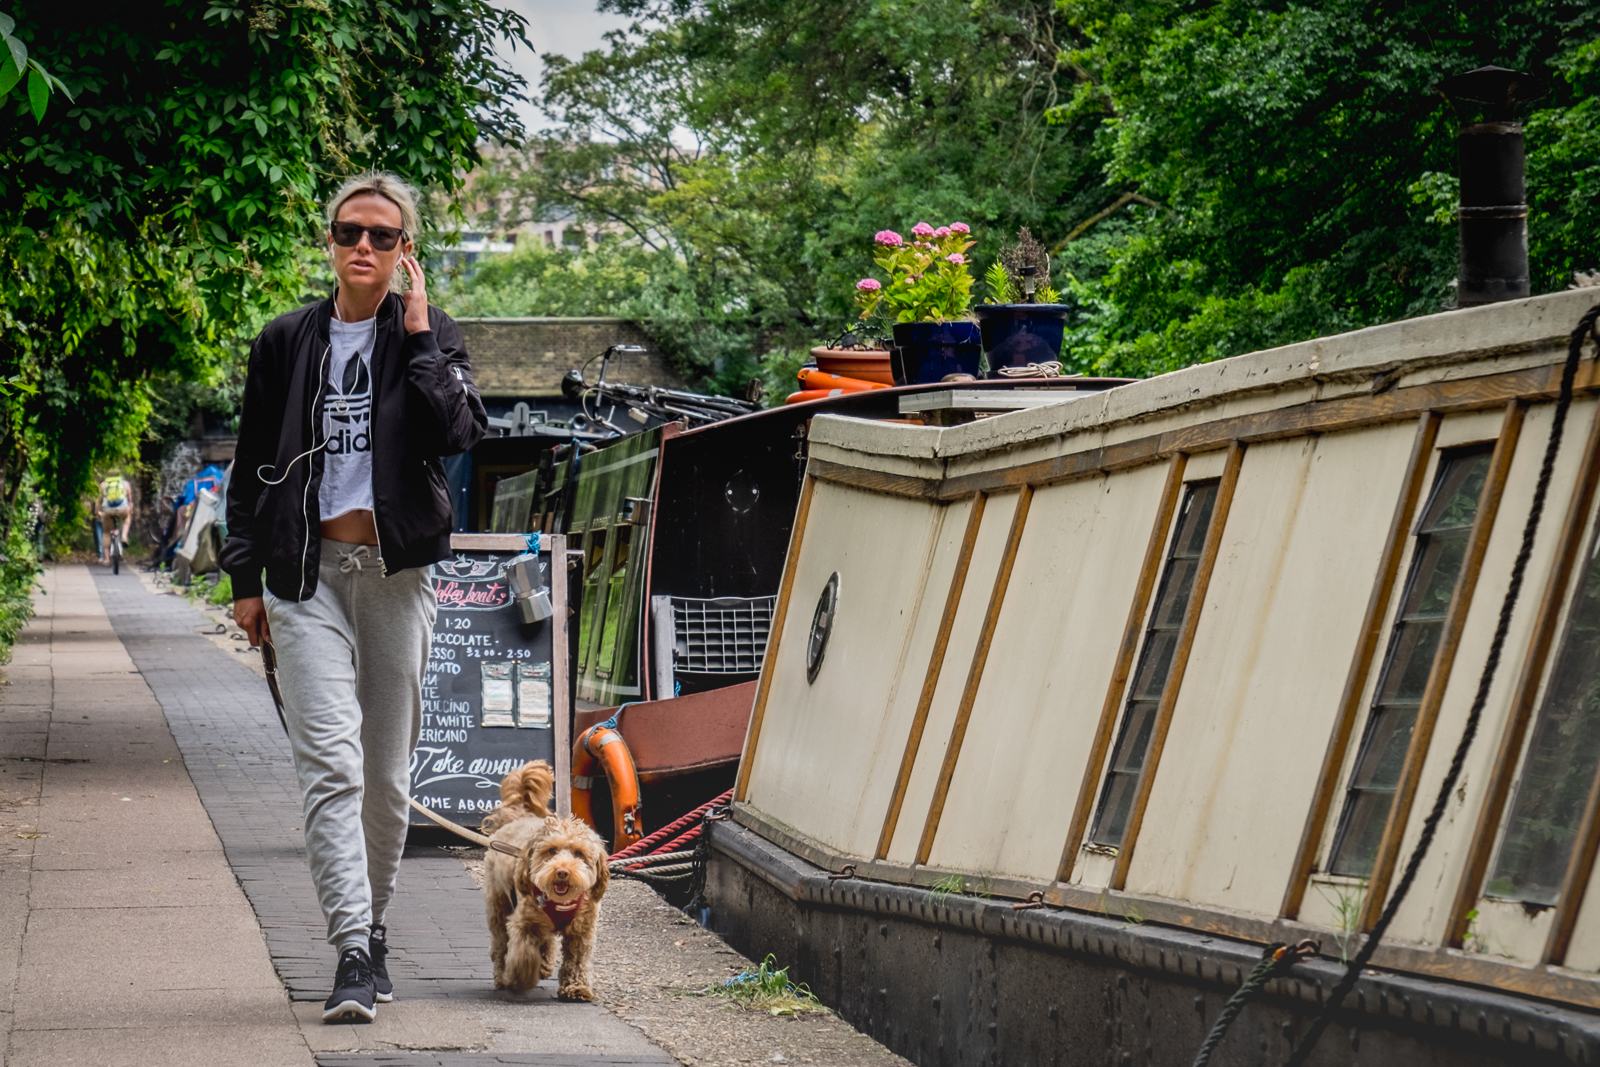 20160708_Islington_Vincent-Terrace_Coffee-Boat-Cafe